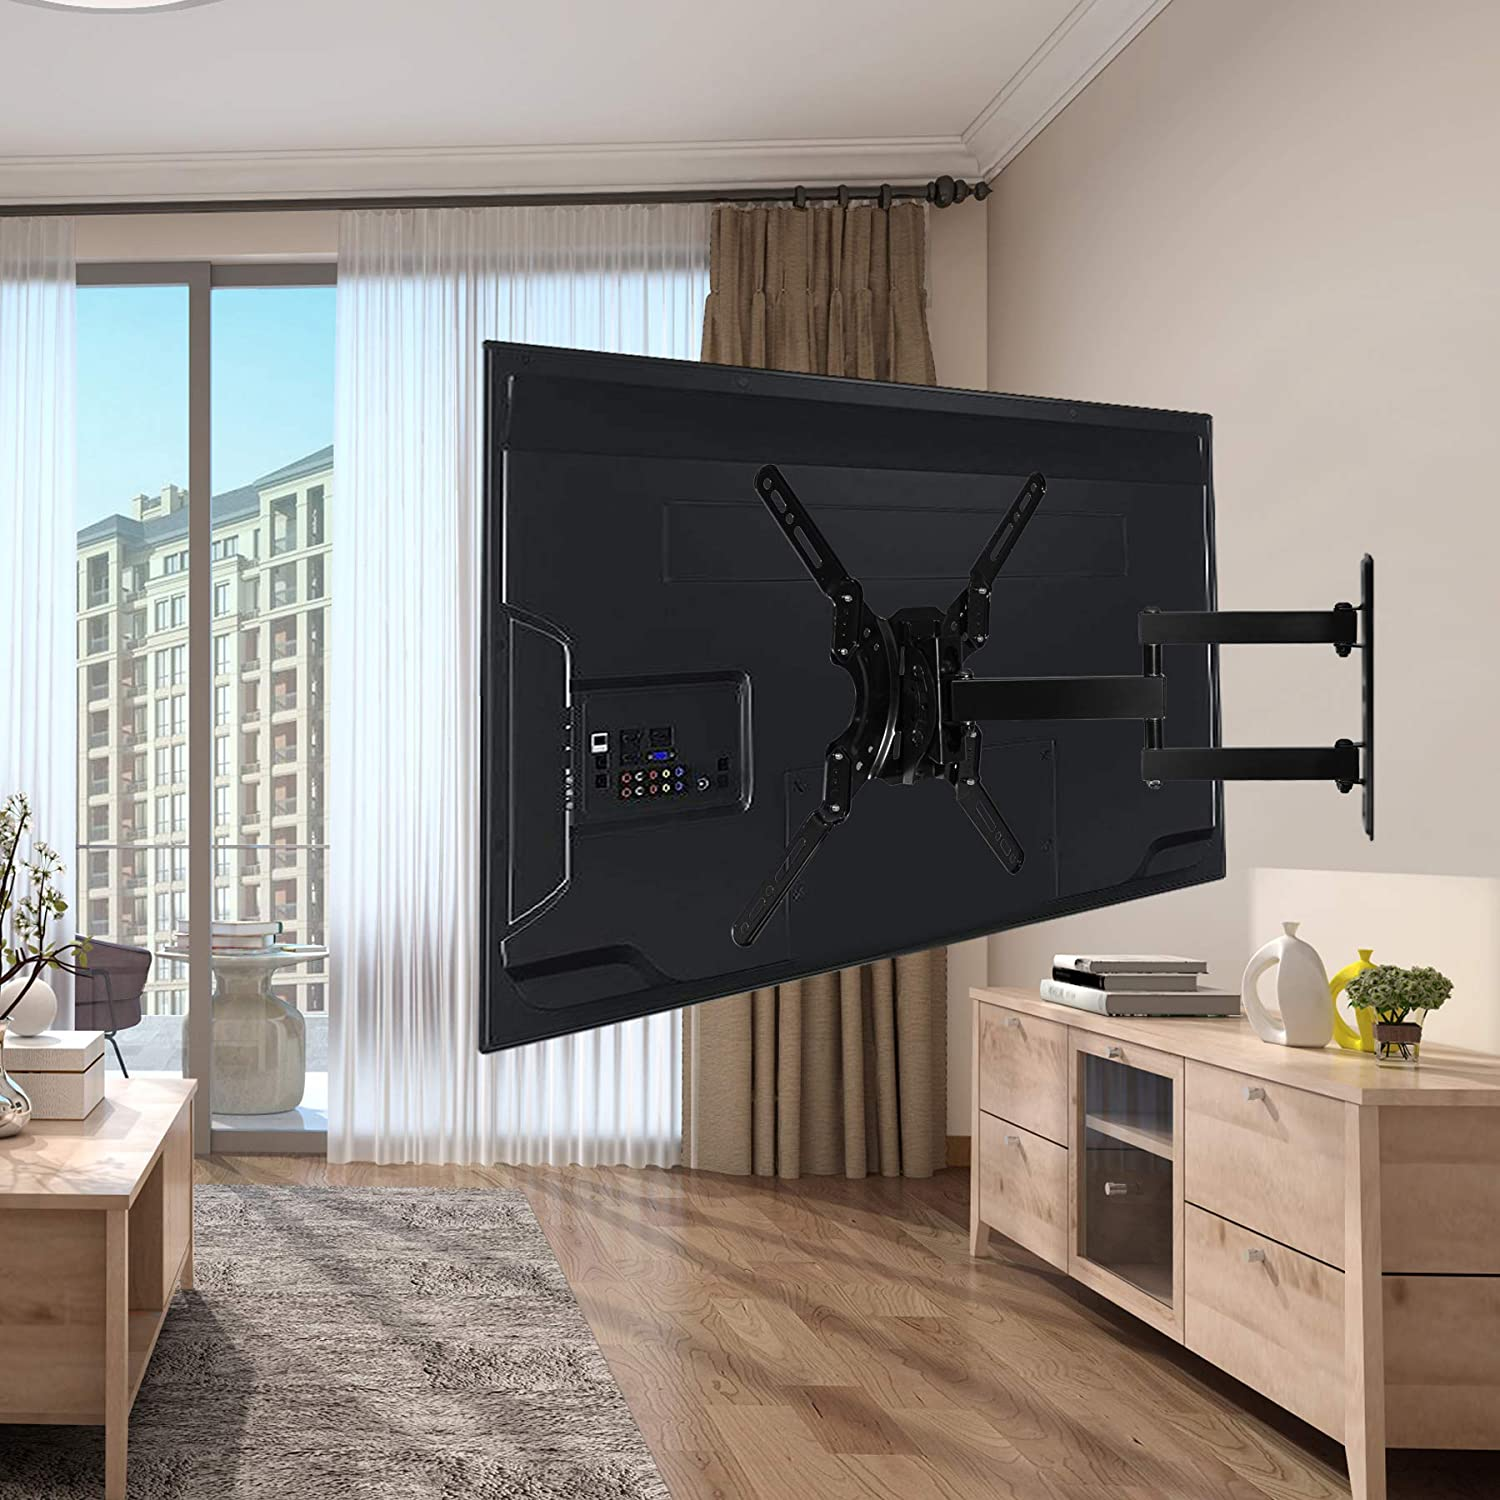 FORGING MOUNT FM9270-B Single Stud TV Wall Mount Bracket Full Motion Articulating Arms for Most 17-50 inch LED,LCD,OLED,Plasma Screen TVs up to 60LBS and VESA 400X400mm-18